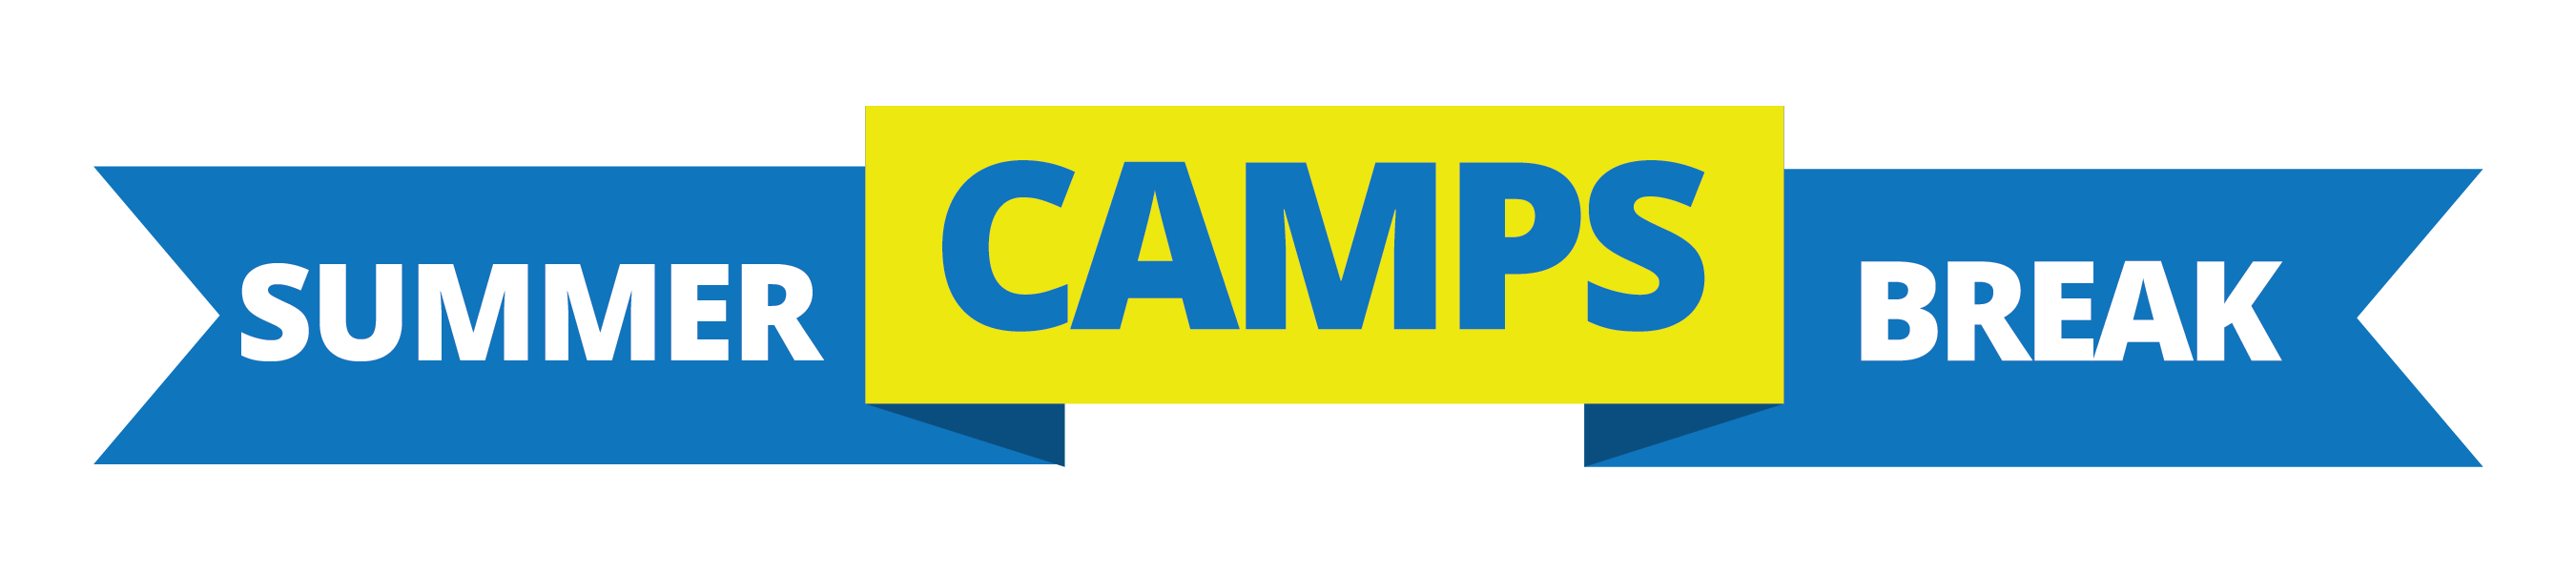 Youth Camps Summer Banner